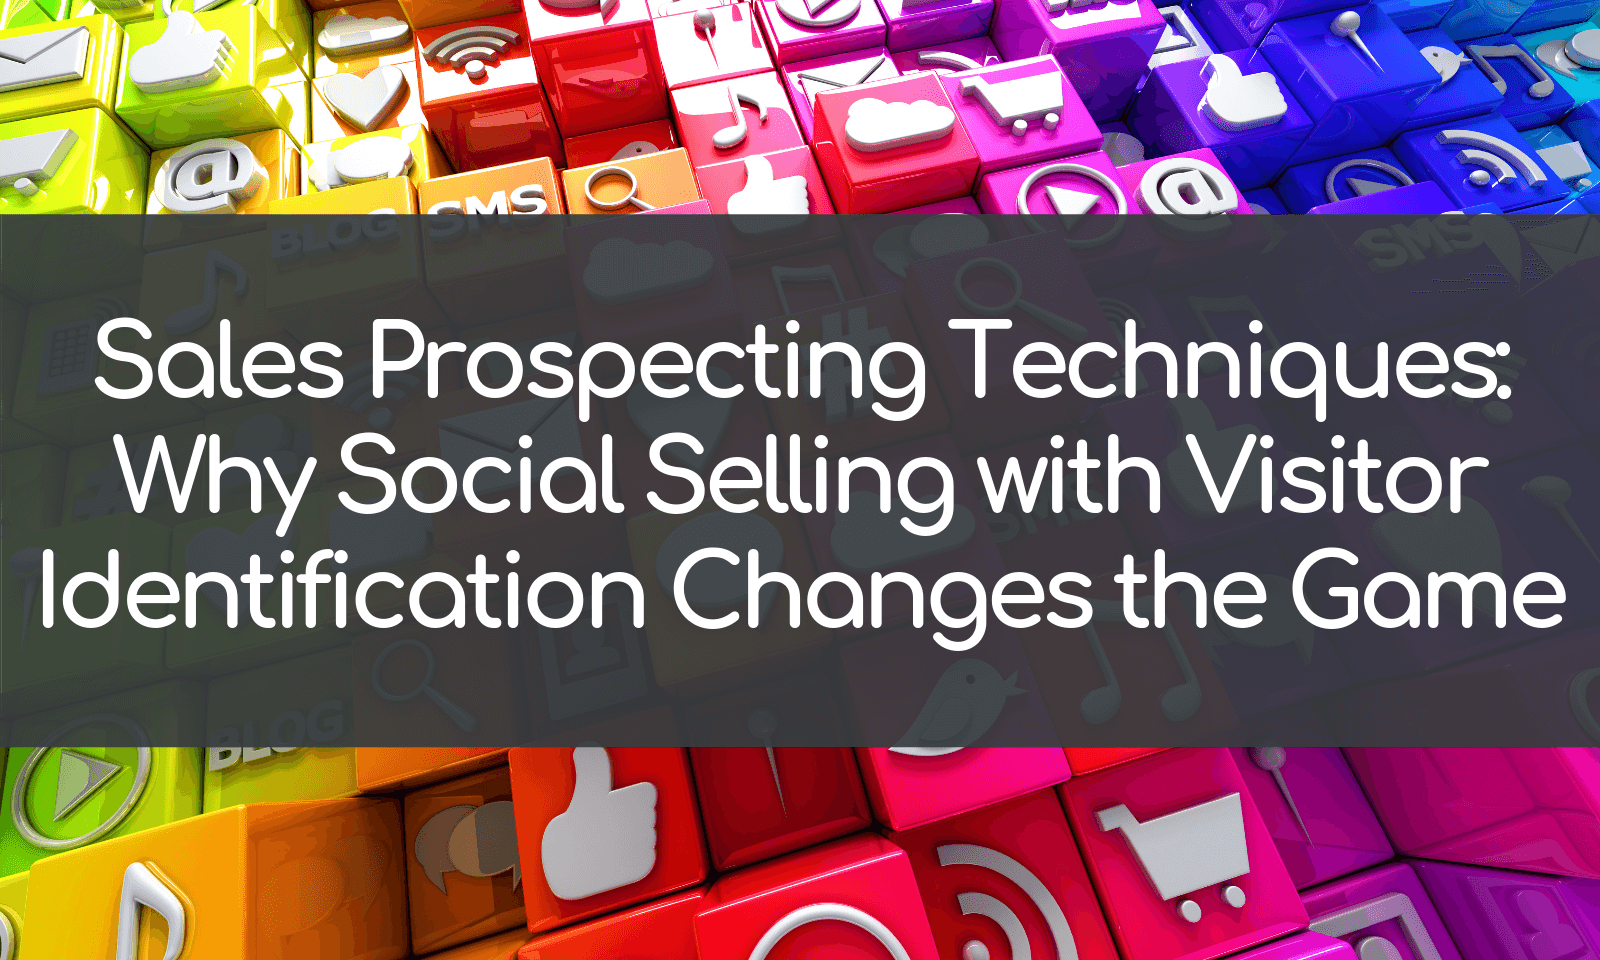 Sales Prospecting Techniques: Why Social Selling with Visitor Identification Changes the Game